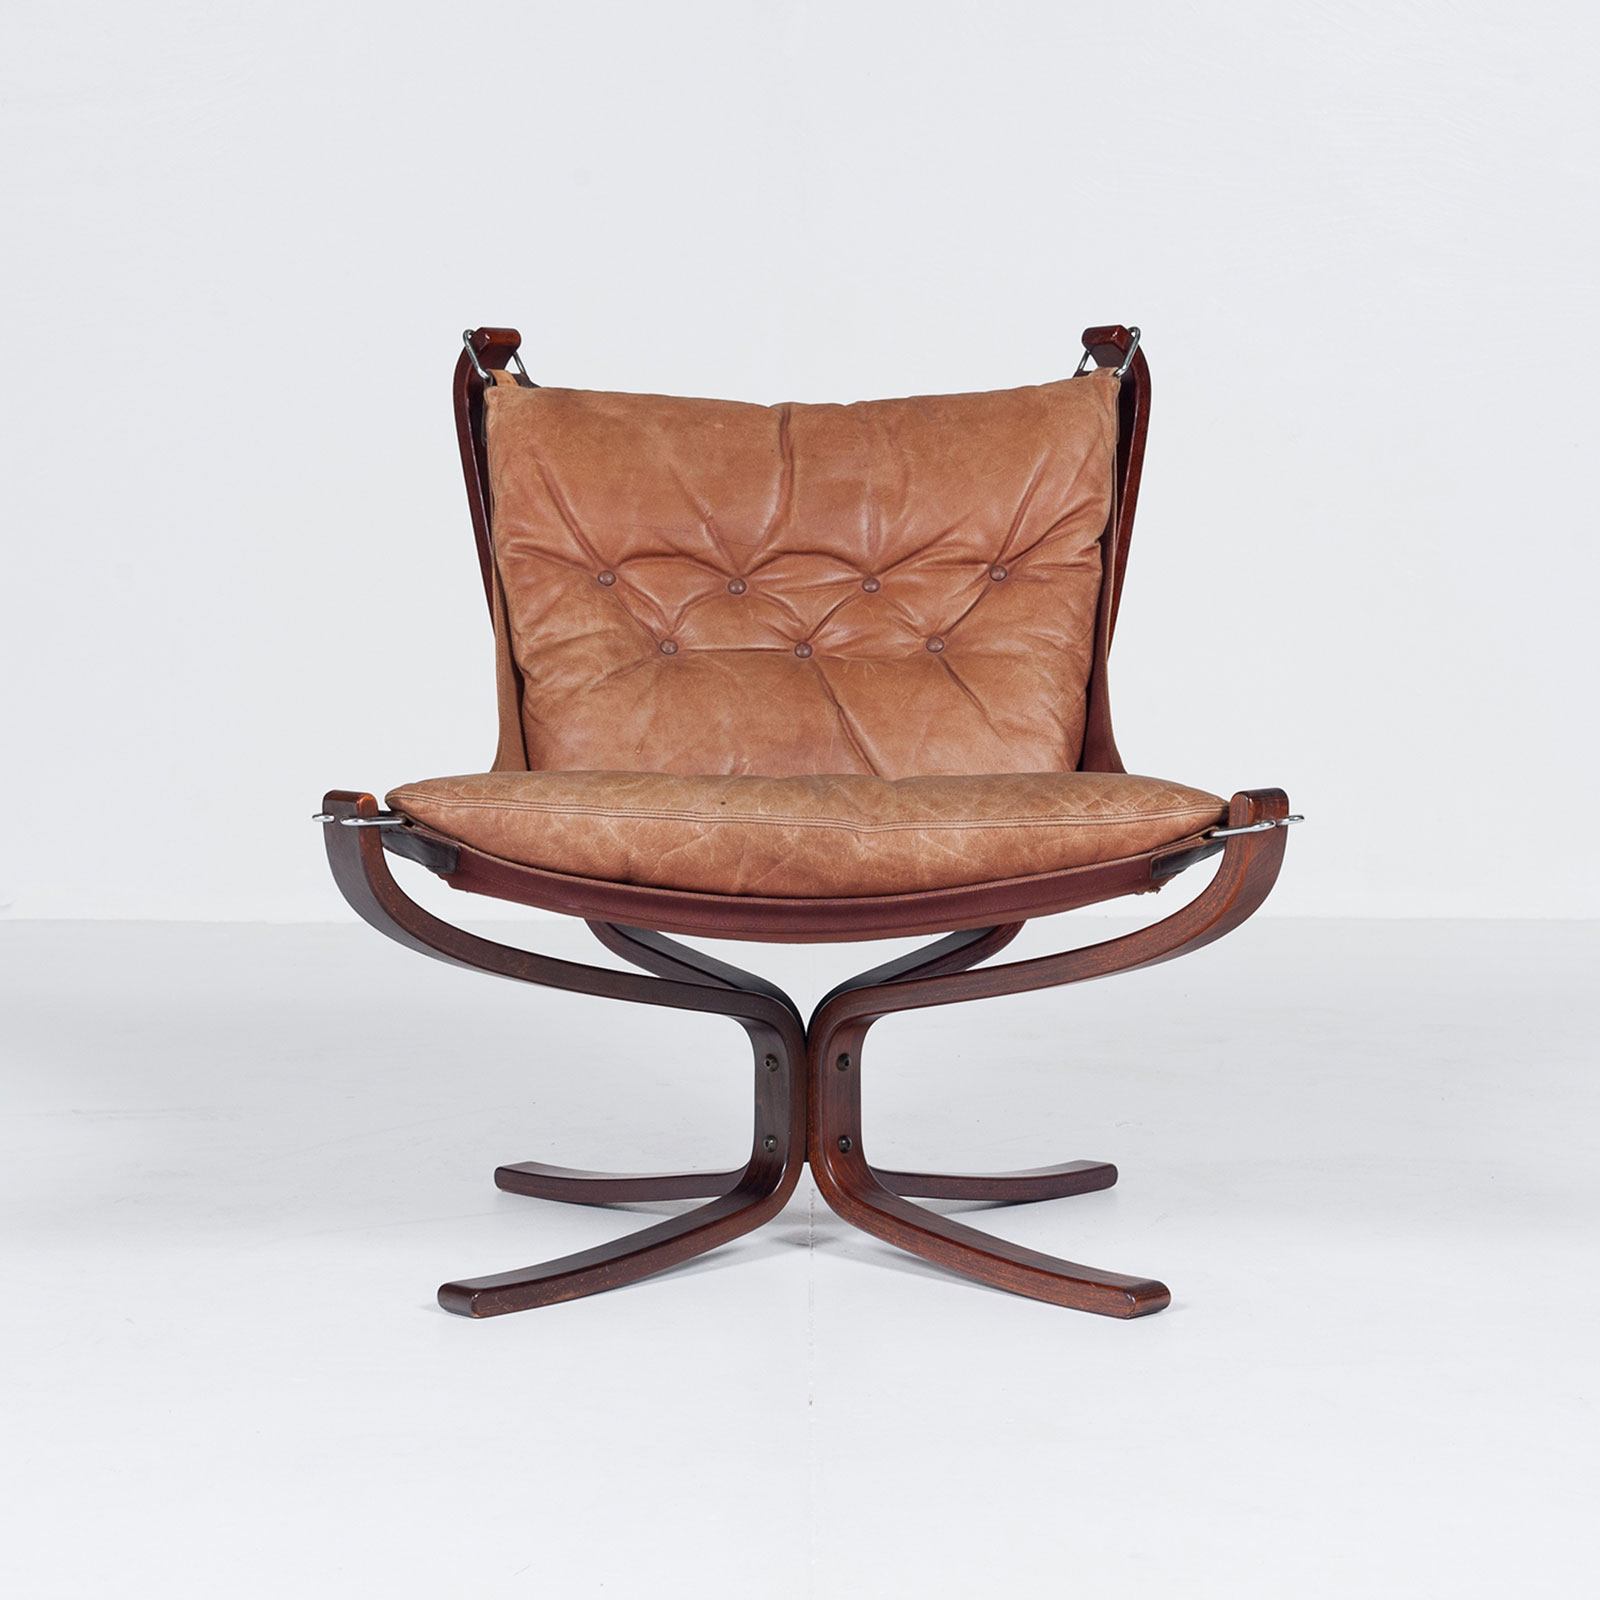 Low Back Falcon Armchair In Tan Leather By Sigurd Ressell For Vatne Mobler, 1971, Norway6699